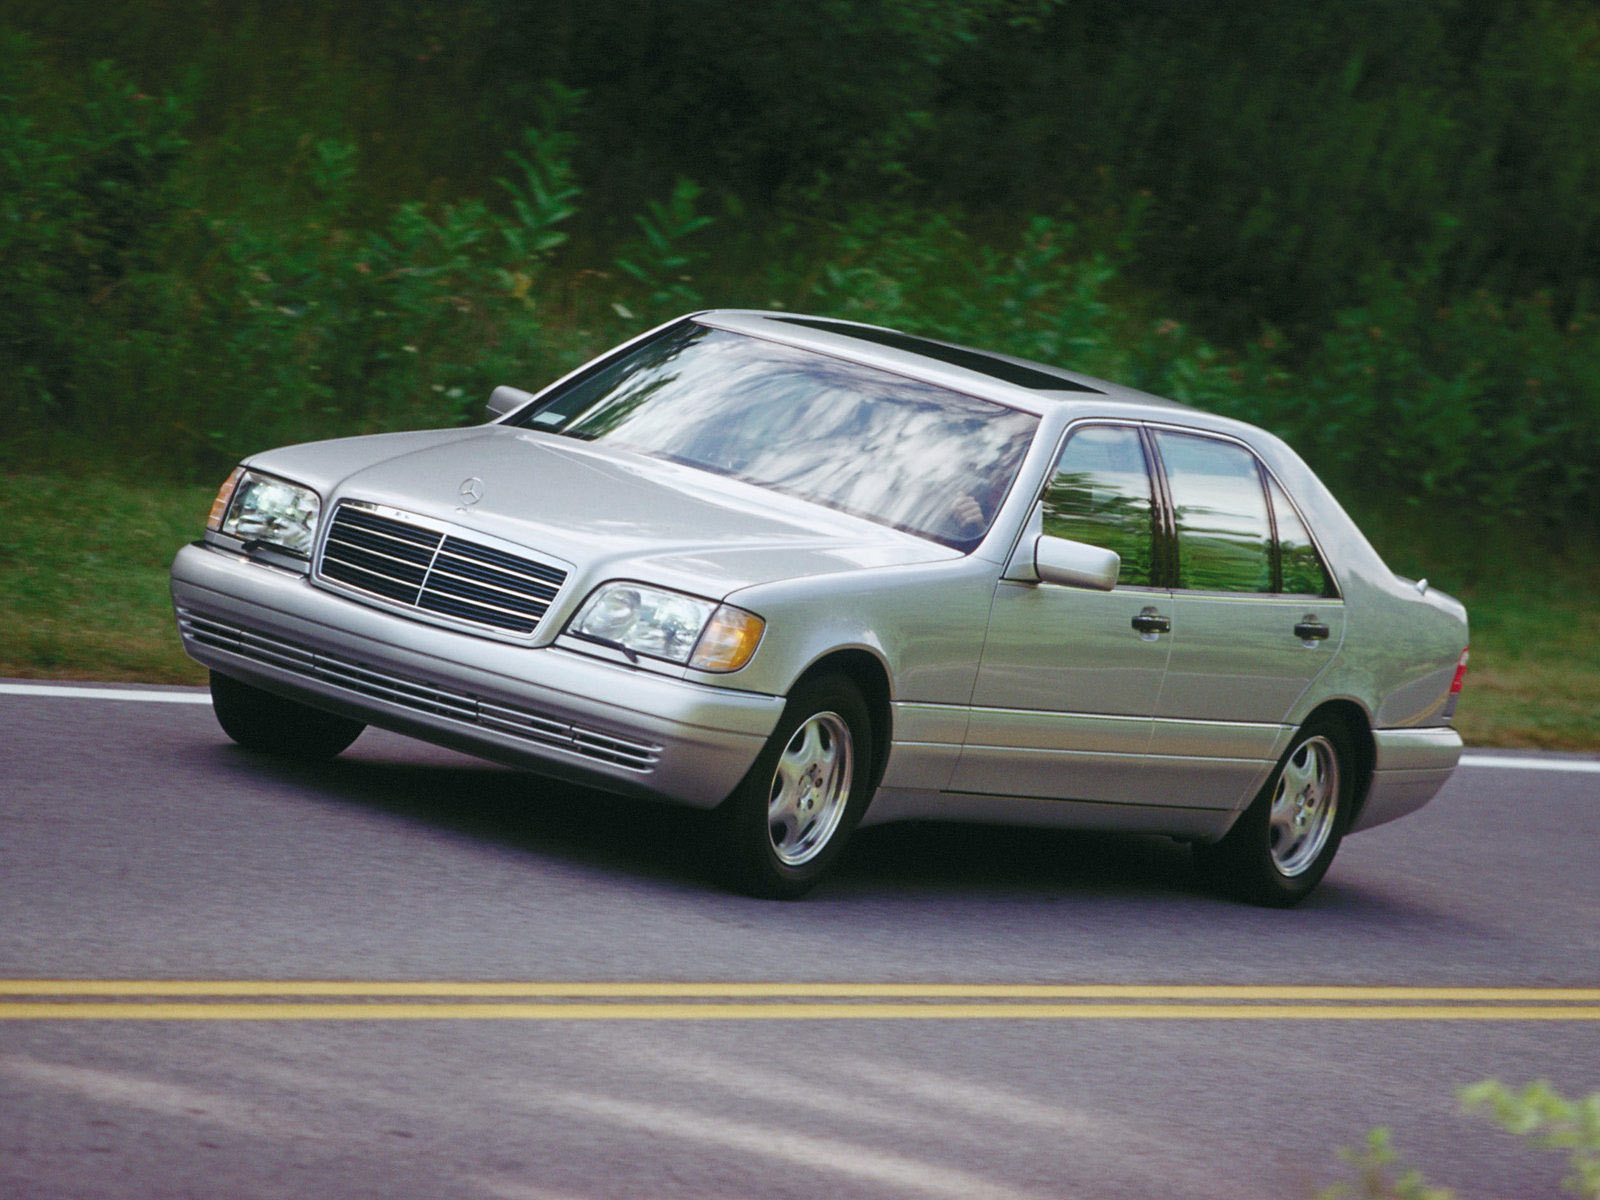 Benz s class w140 600sel or s600 m120 394 hp w140 information - Mercedes Benz S Class W140